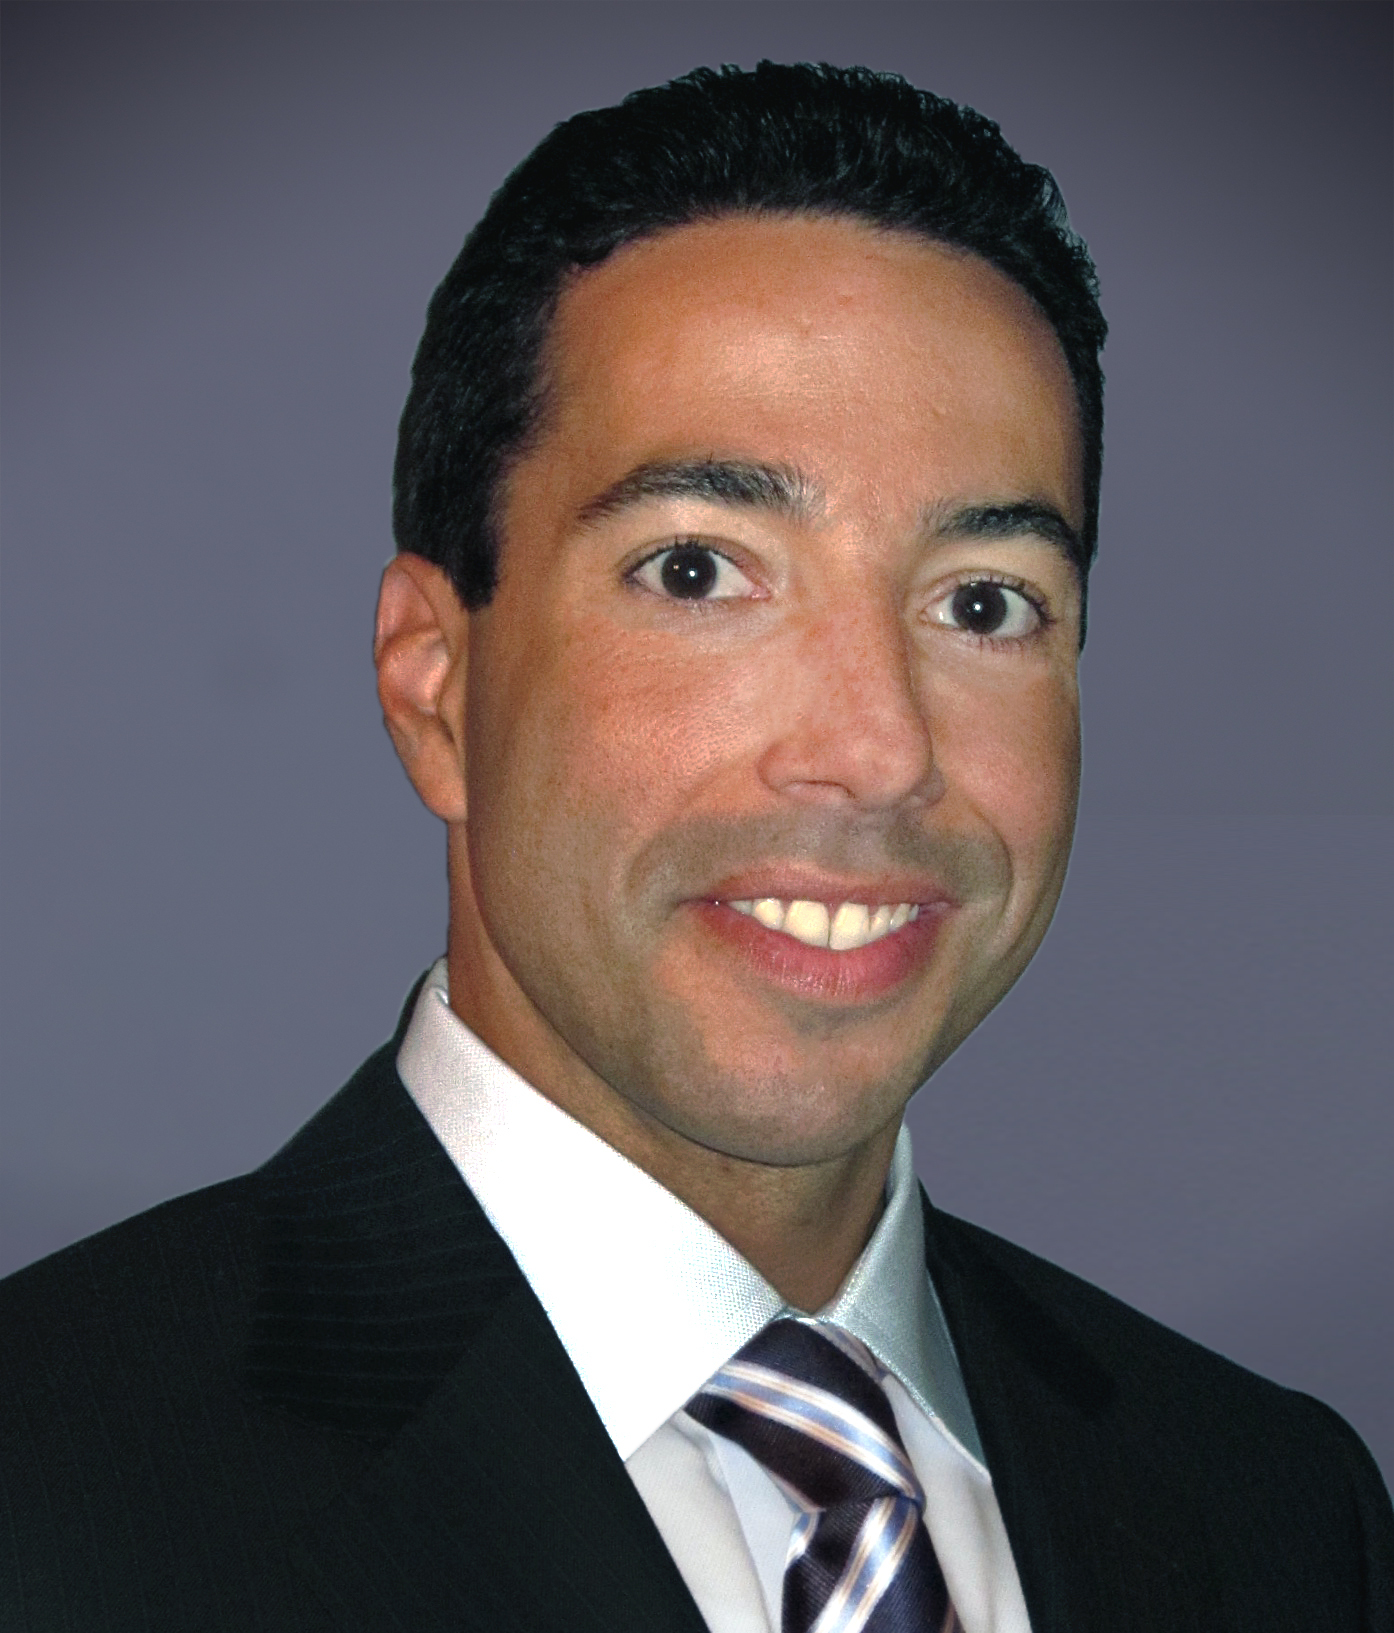 AXIS Re Welcomes Jason Busti as President of North America